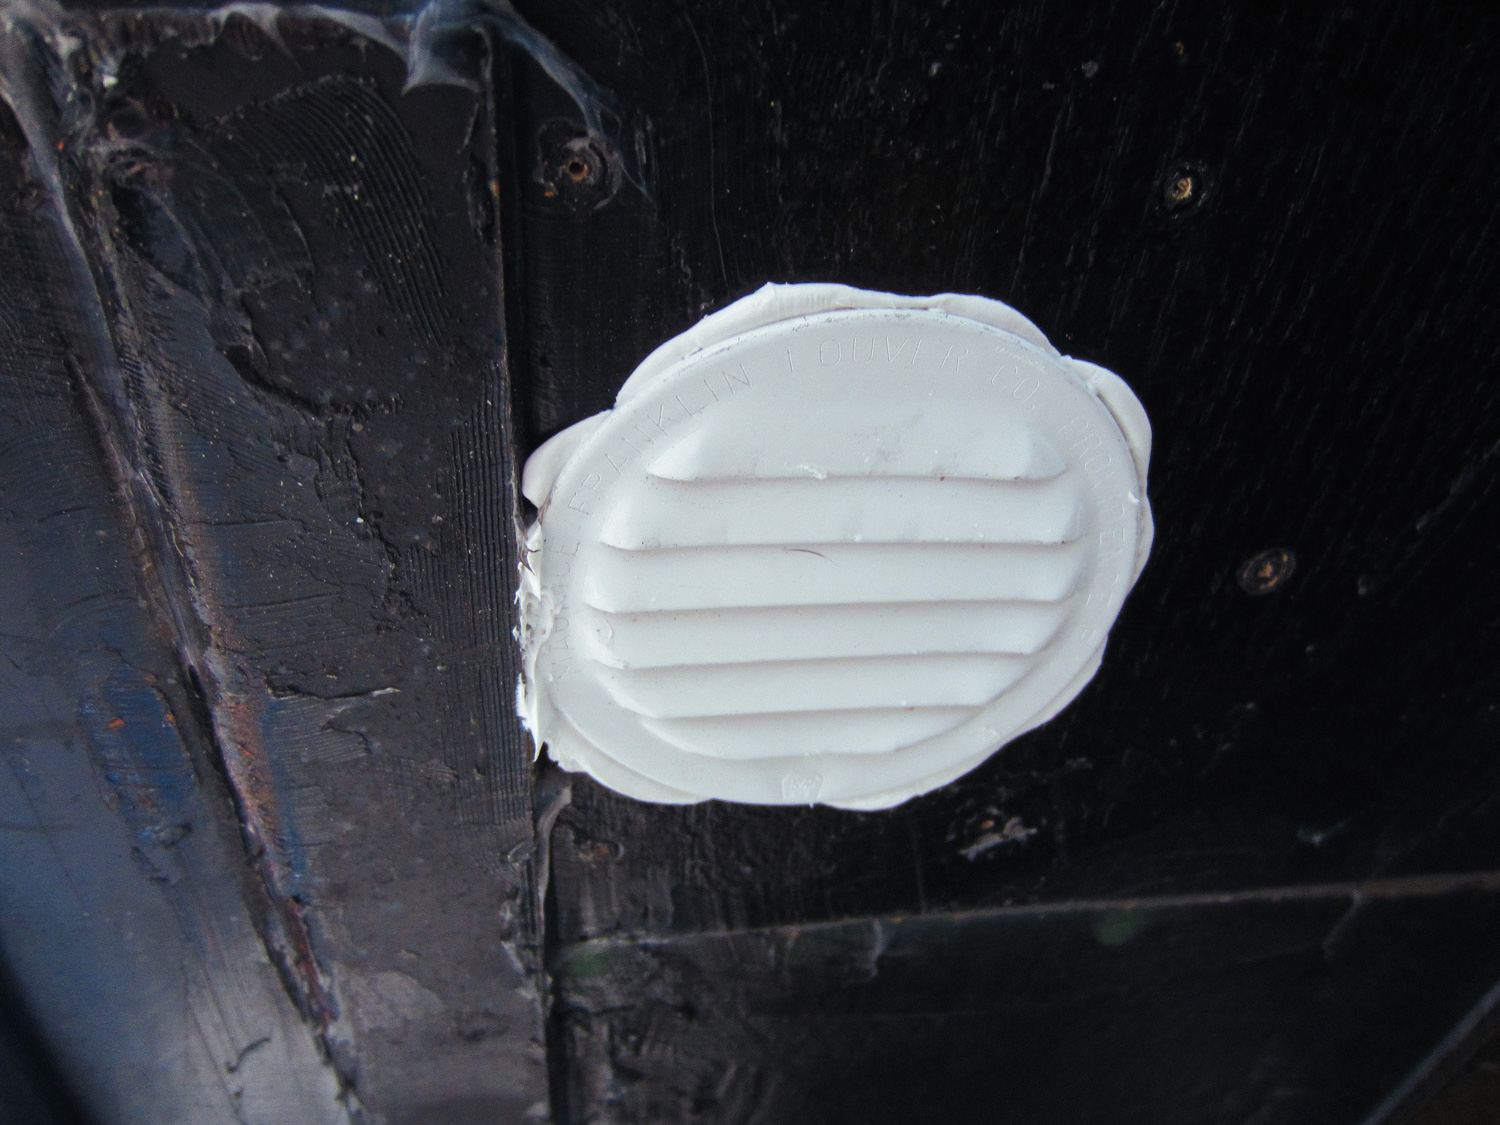 This is what the composting toilet vent cover looks like from underneath the RV. This has been recently (2018) changed and the toilet now vents out the roof.